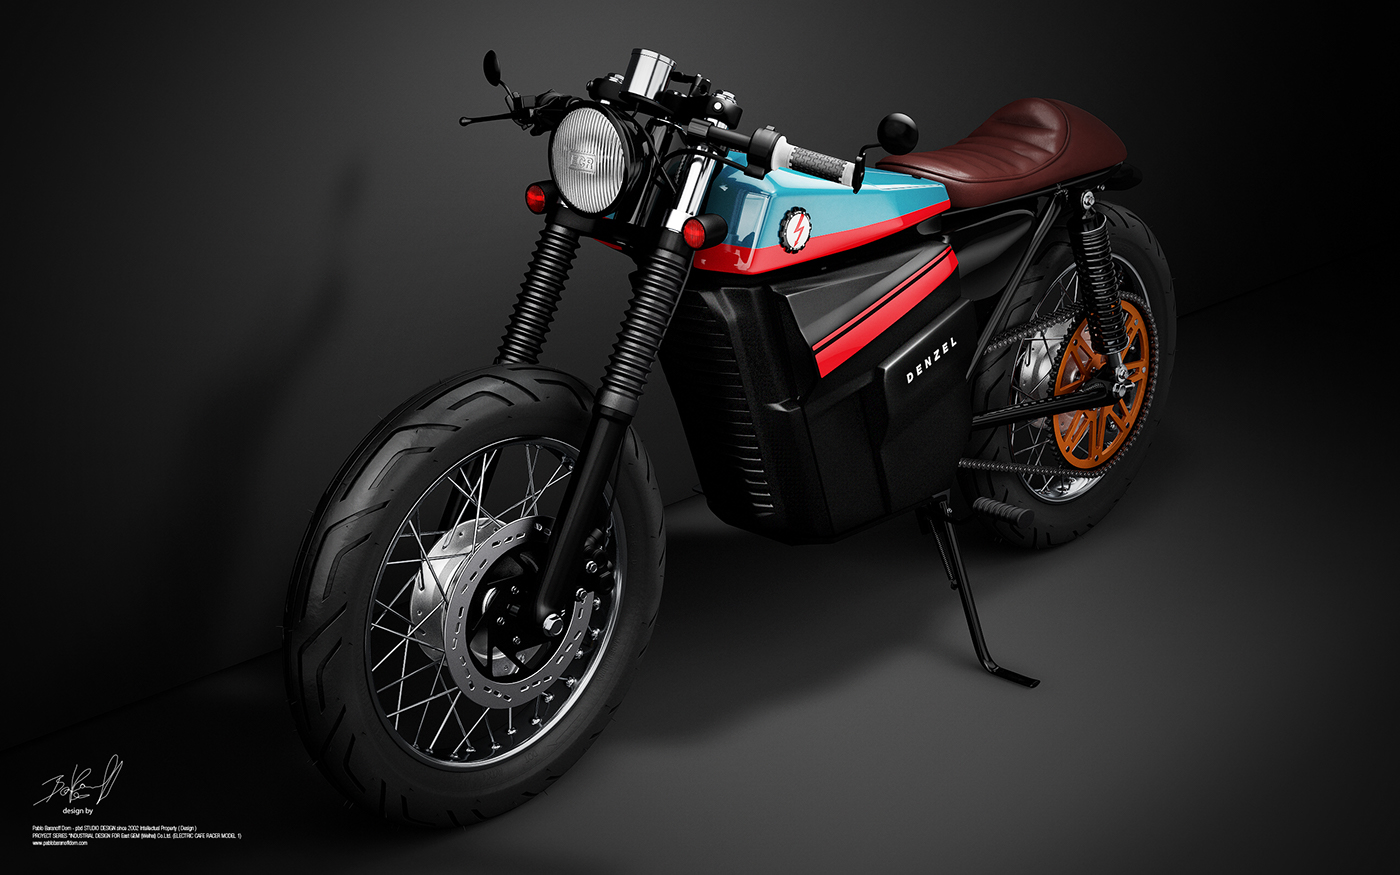 Bike china electric Honda cafe racer caferacer electric bike motorcycle brand